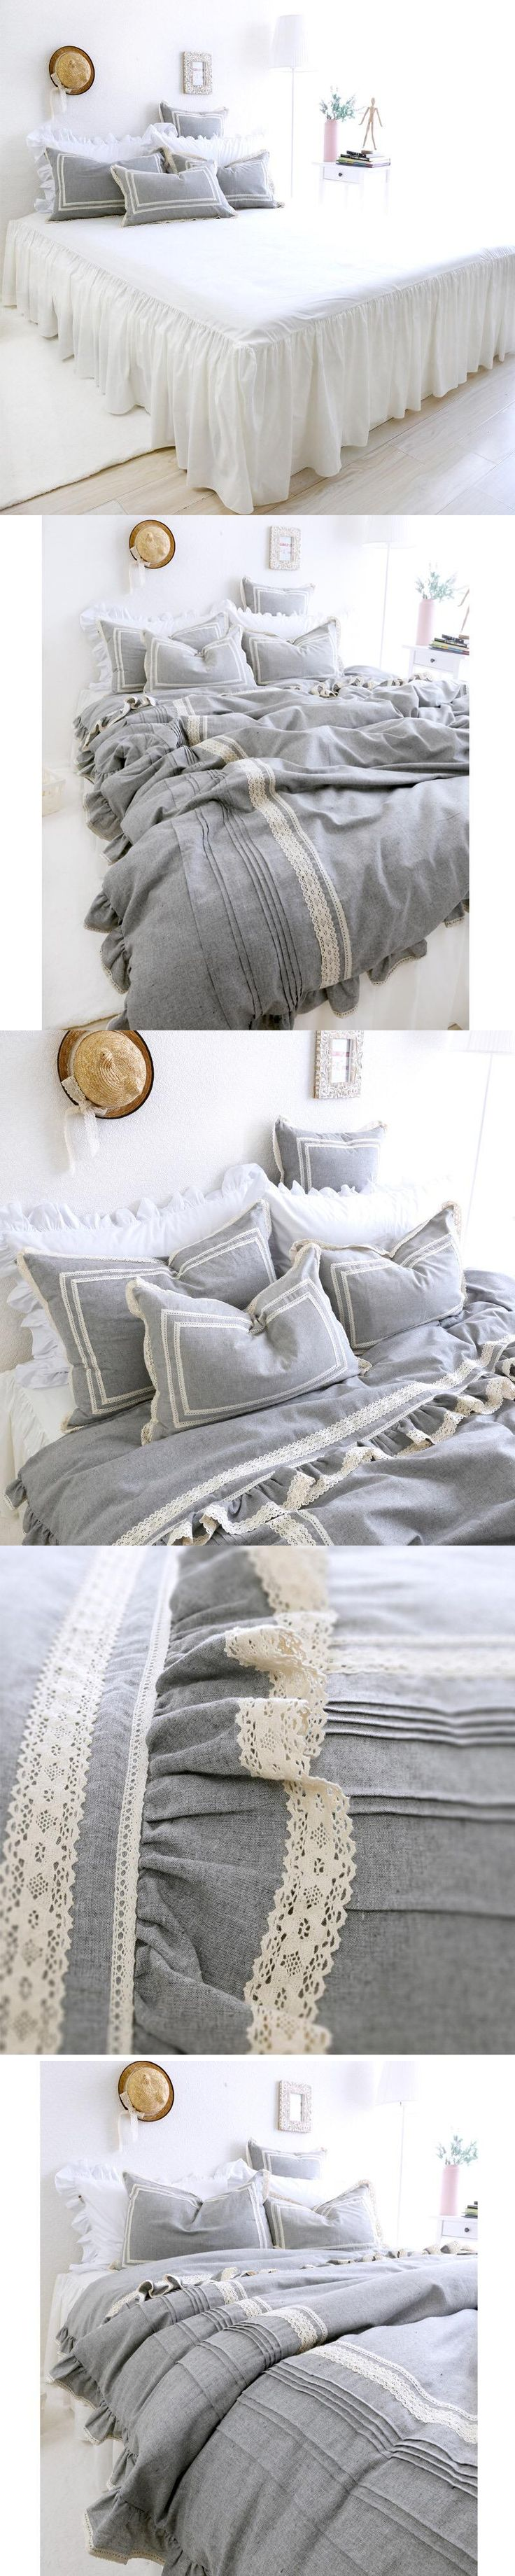 Best 25+ Grey bed sheets ideas on Pinterest | Grey bed linen, Grey ...